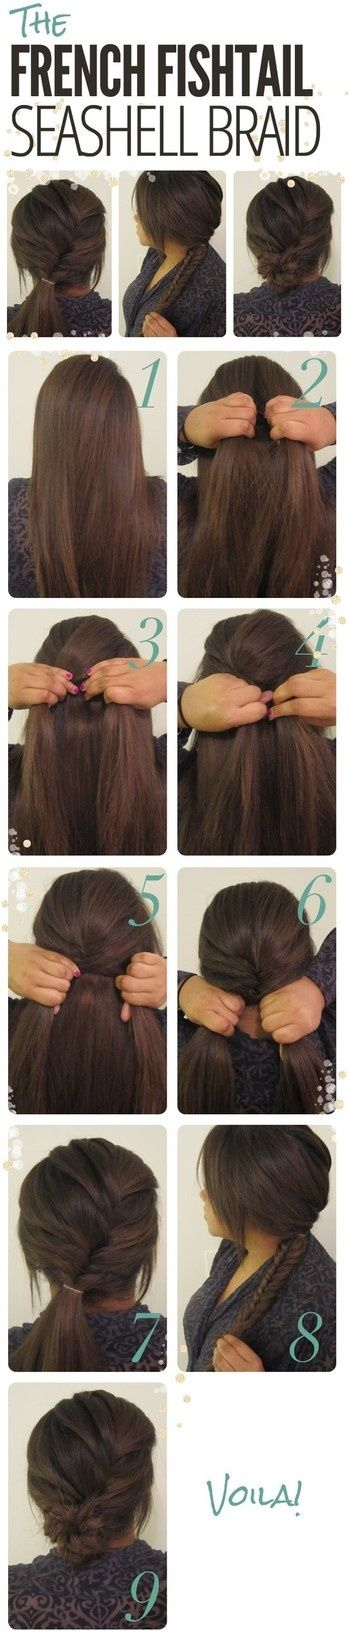 French fishtail hair tutorial. So creative and easy and three different hairstyles come out of it!